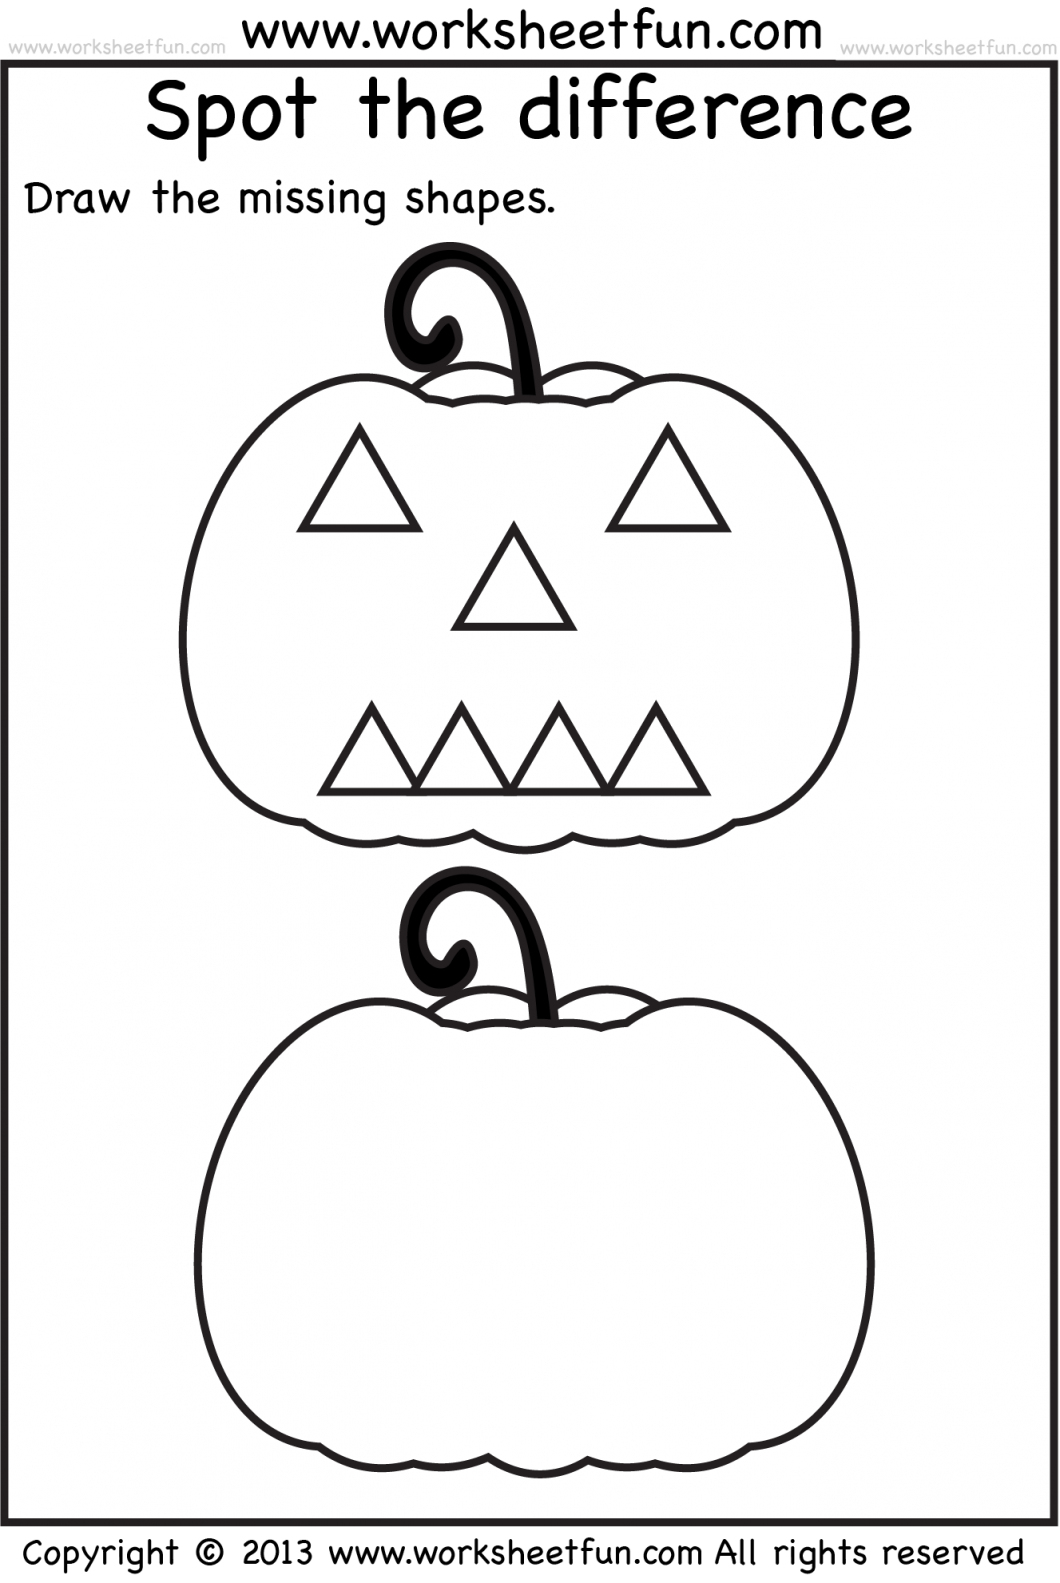 Free Printable Activity Sheets For Kids – With Math Also Activities - Free Printable Spot The Difference For Kids